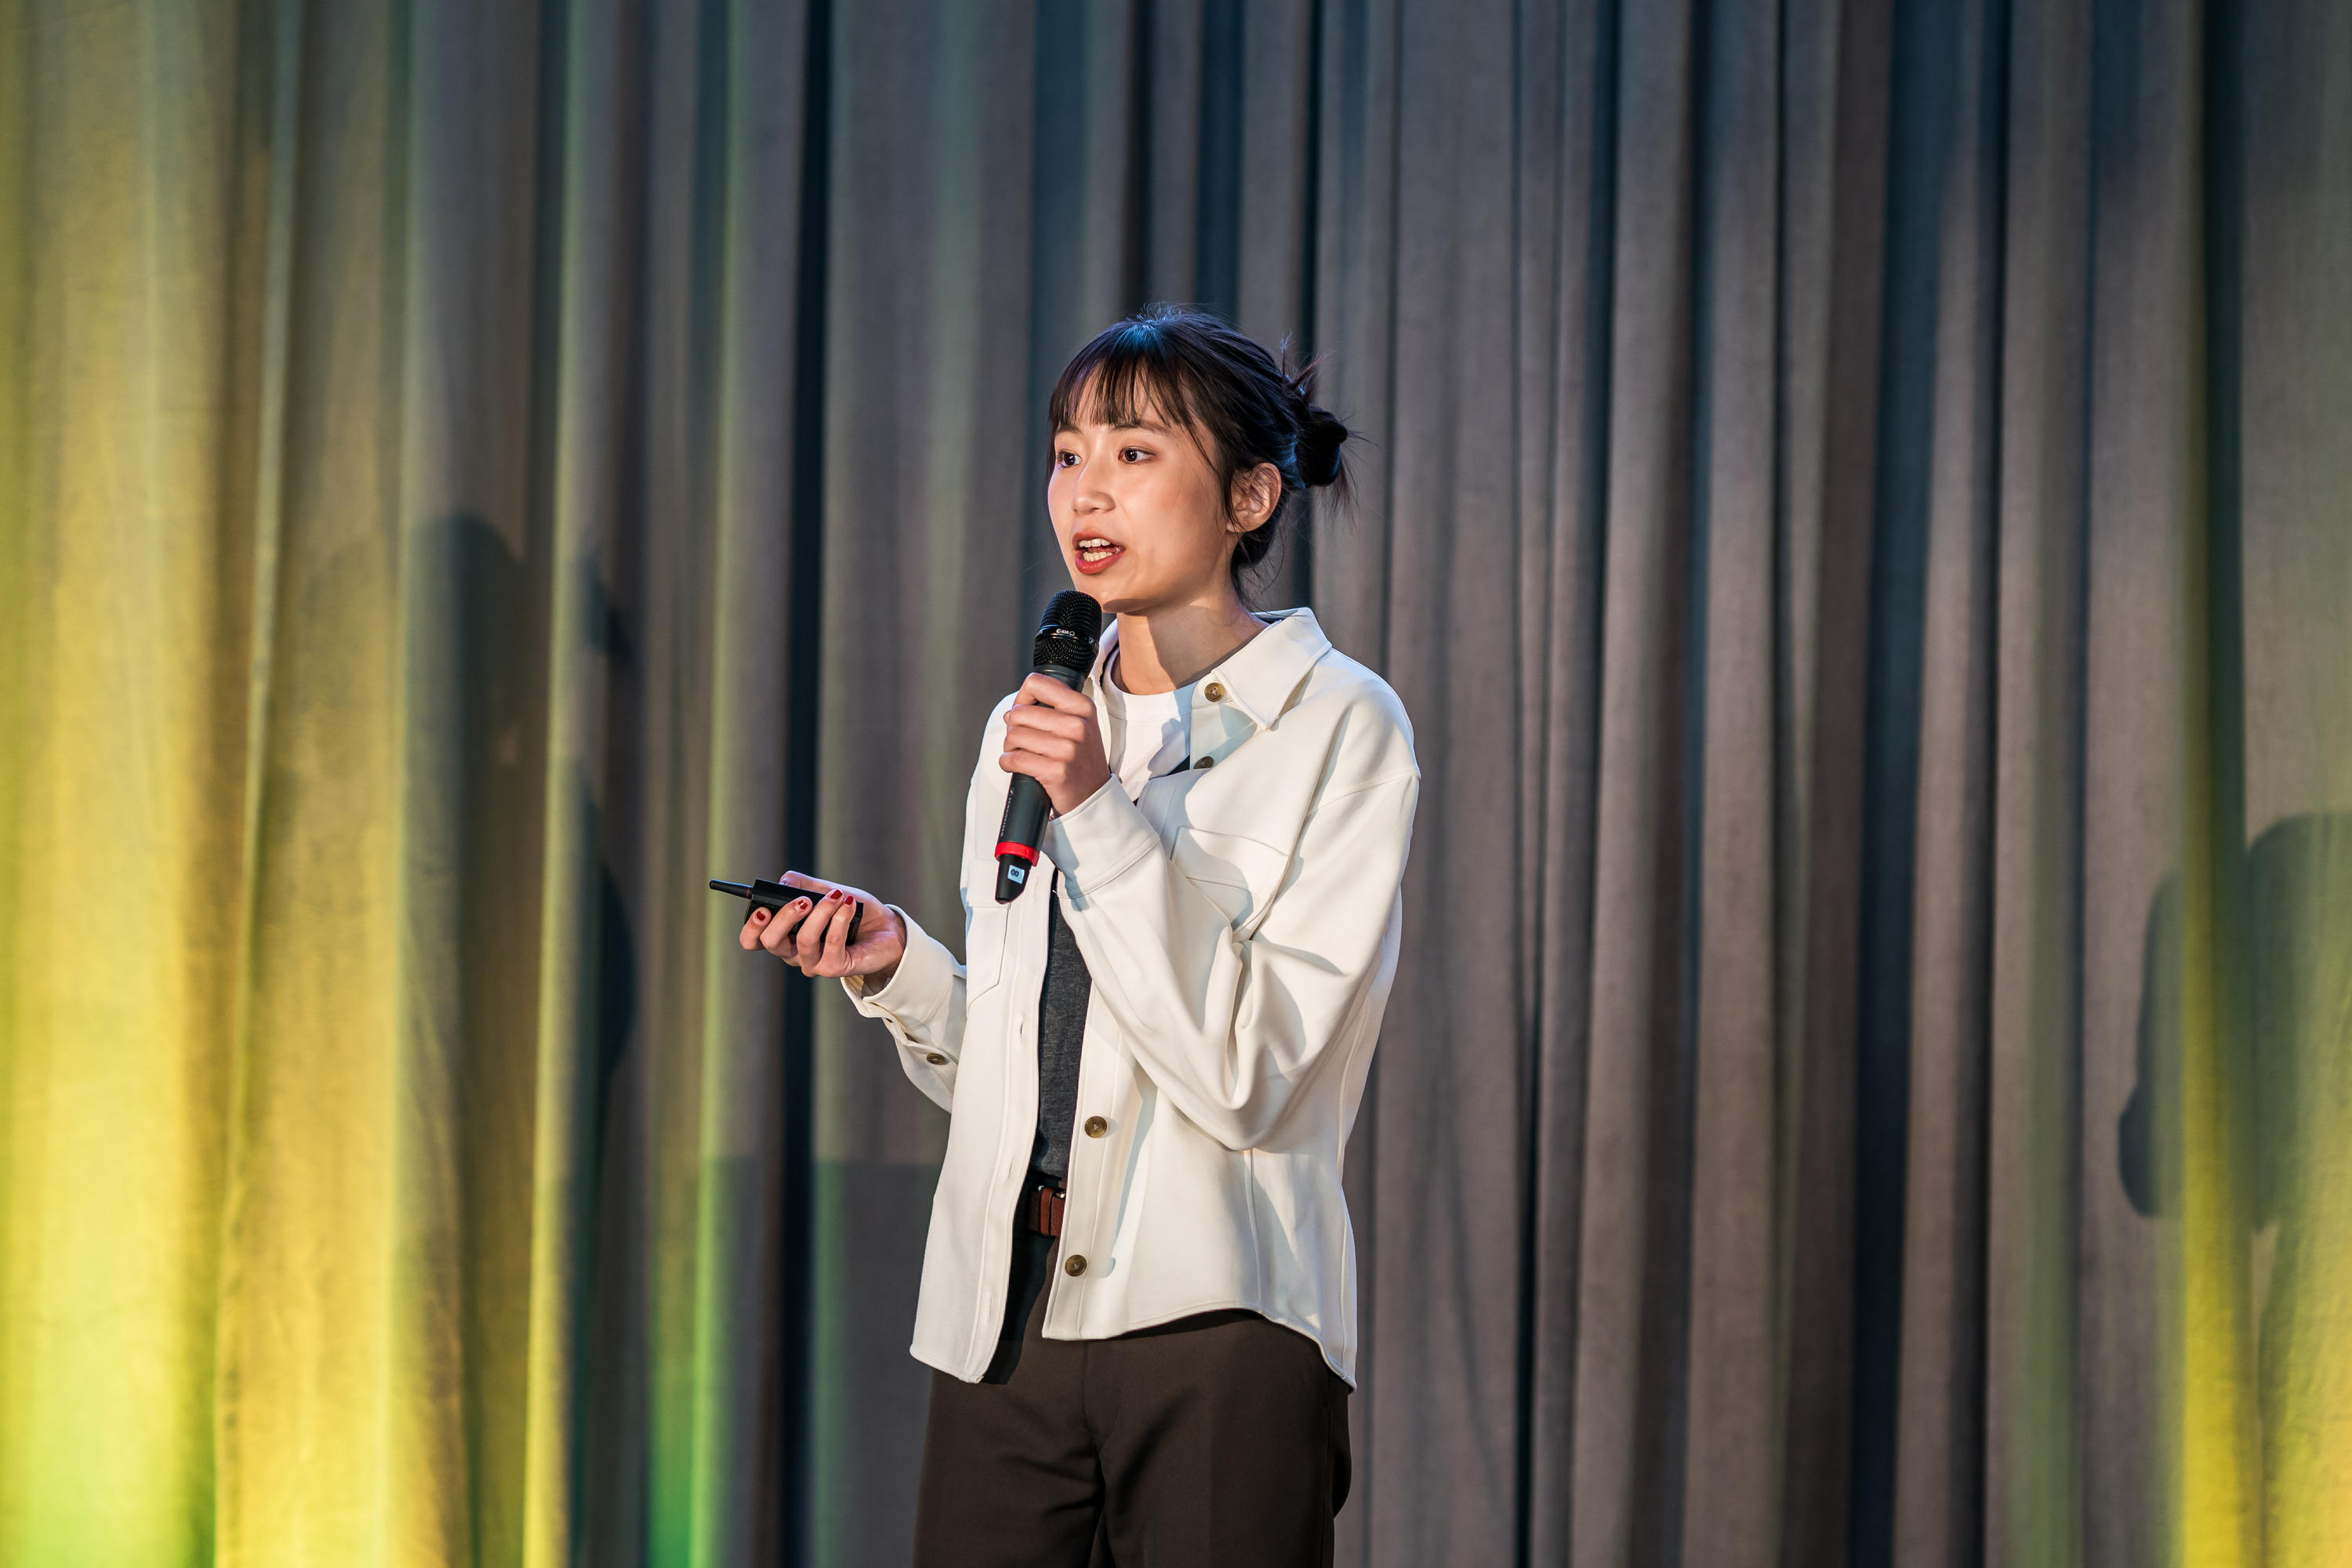 Gooloo co-founder Yuqian Li pitches at the Concept 5K final